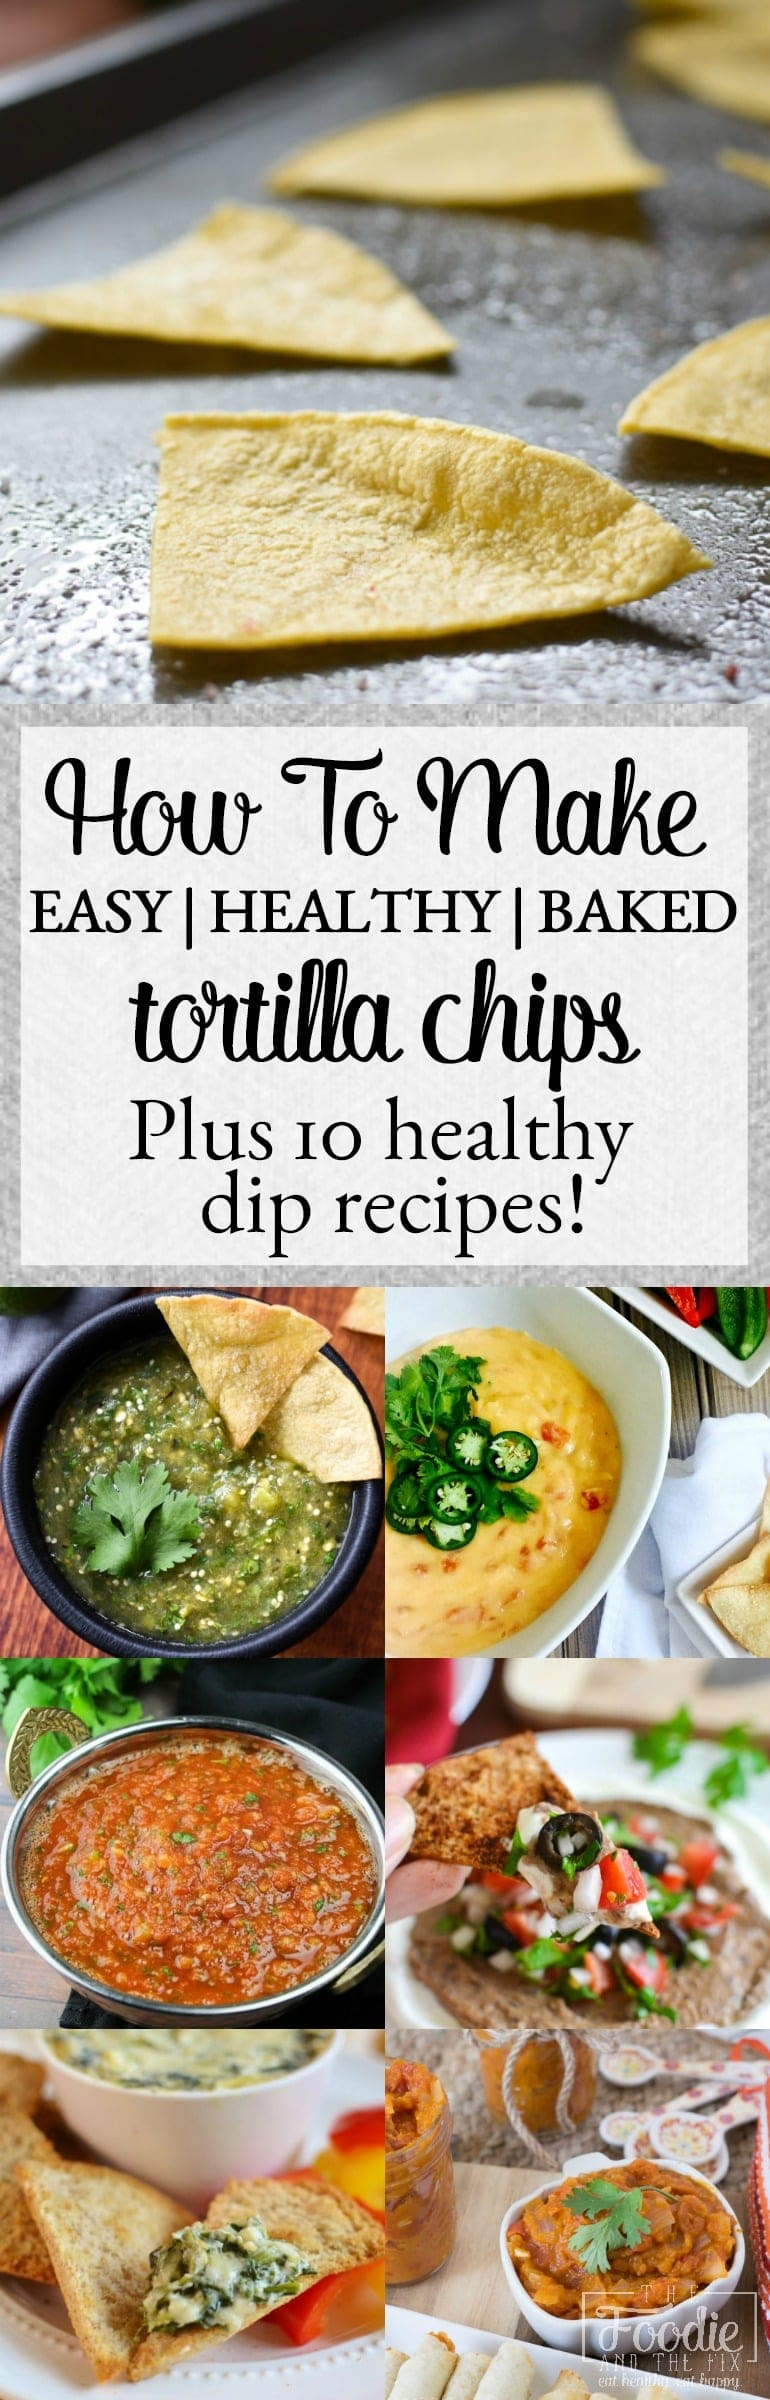 Make easy, healthy baked tortilla chips in under 10 minutes (and 10 delicious things to dip 'em in!) #superbowl #gameday #appetizer #healthy #21dayfix #partyfood #potluck #mealprep